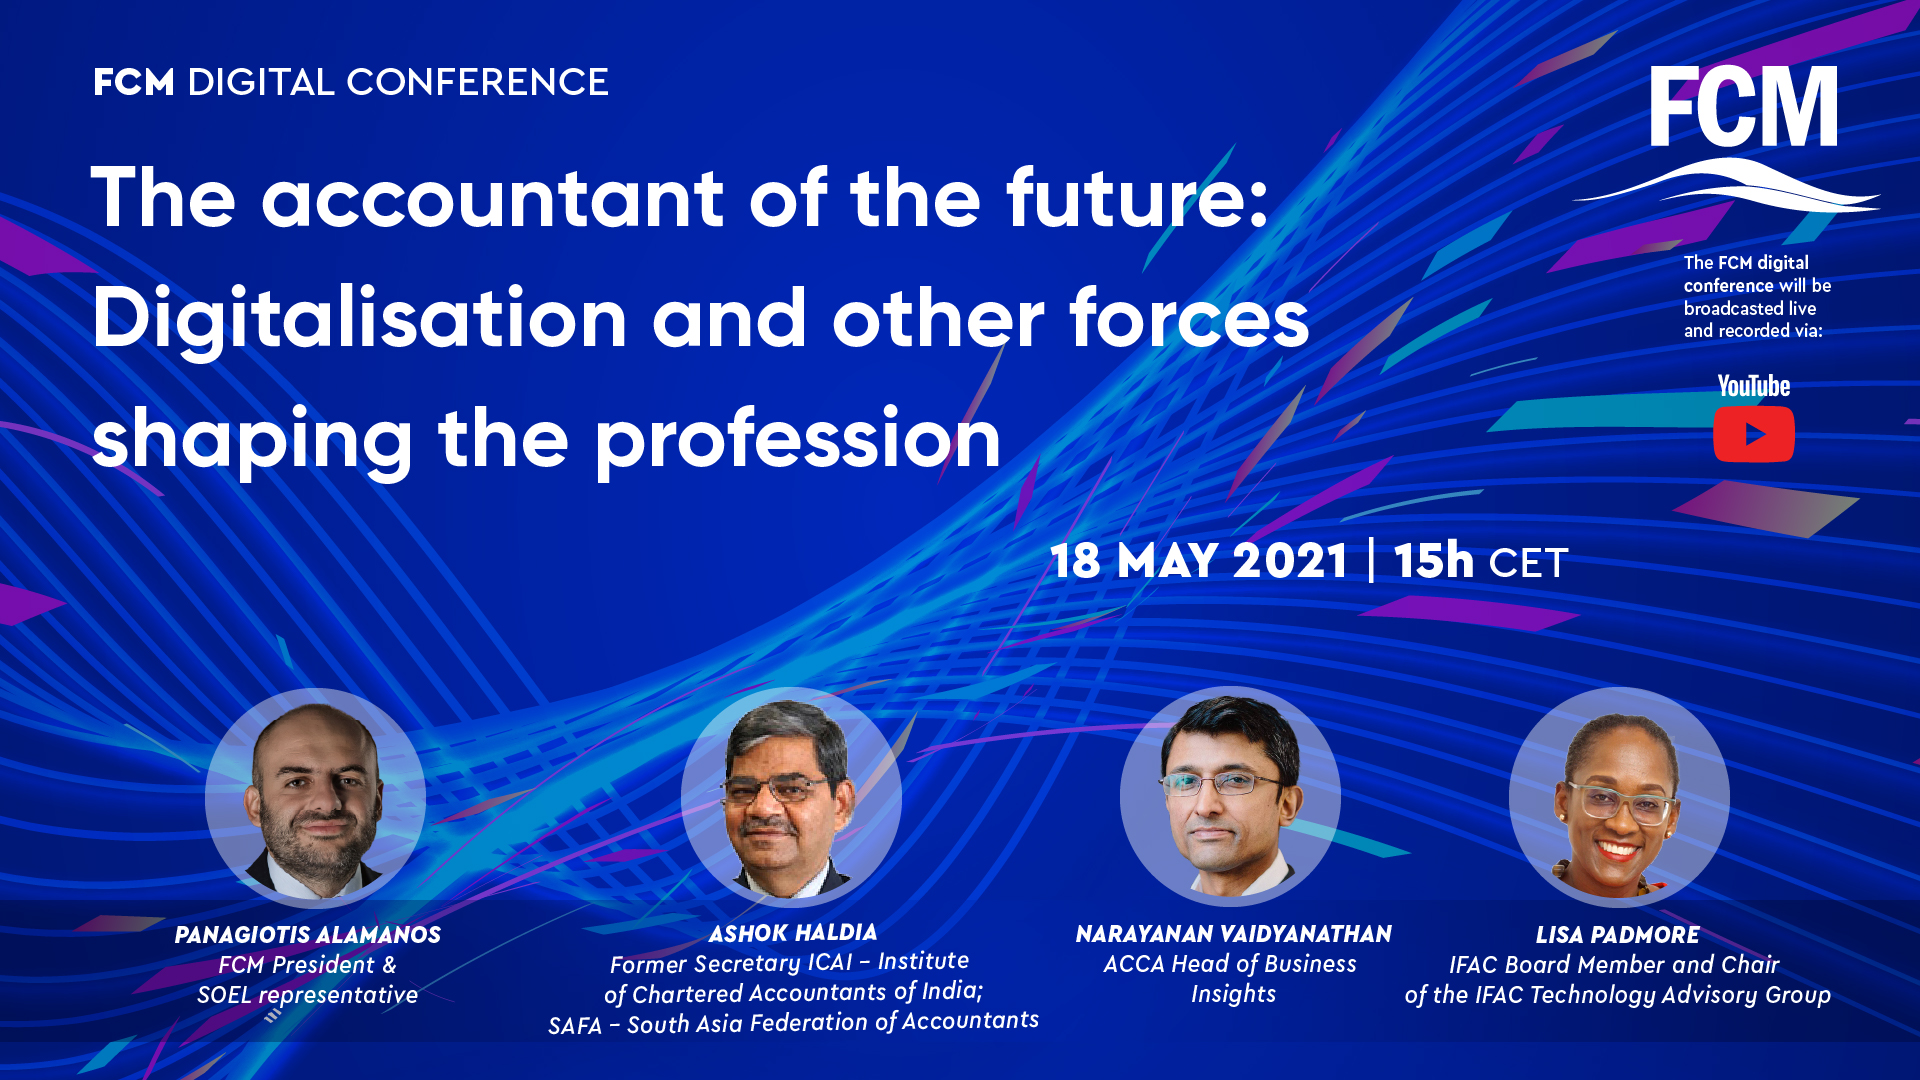 FCM Digital Conference on New Tecnologies & Speakers 18.05.21